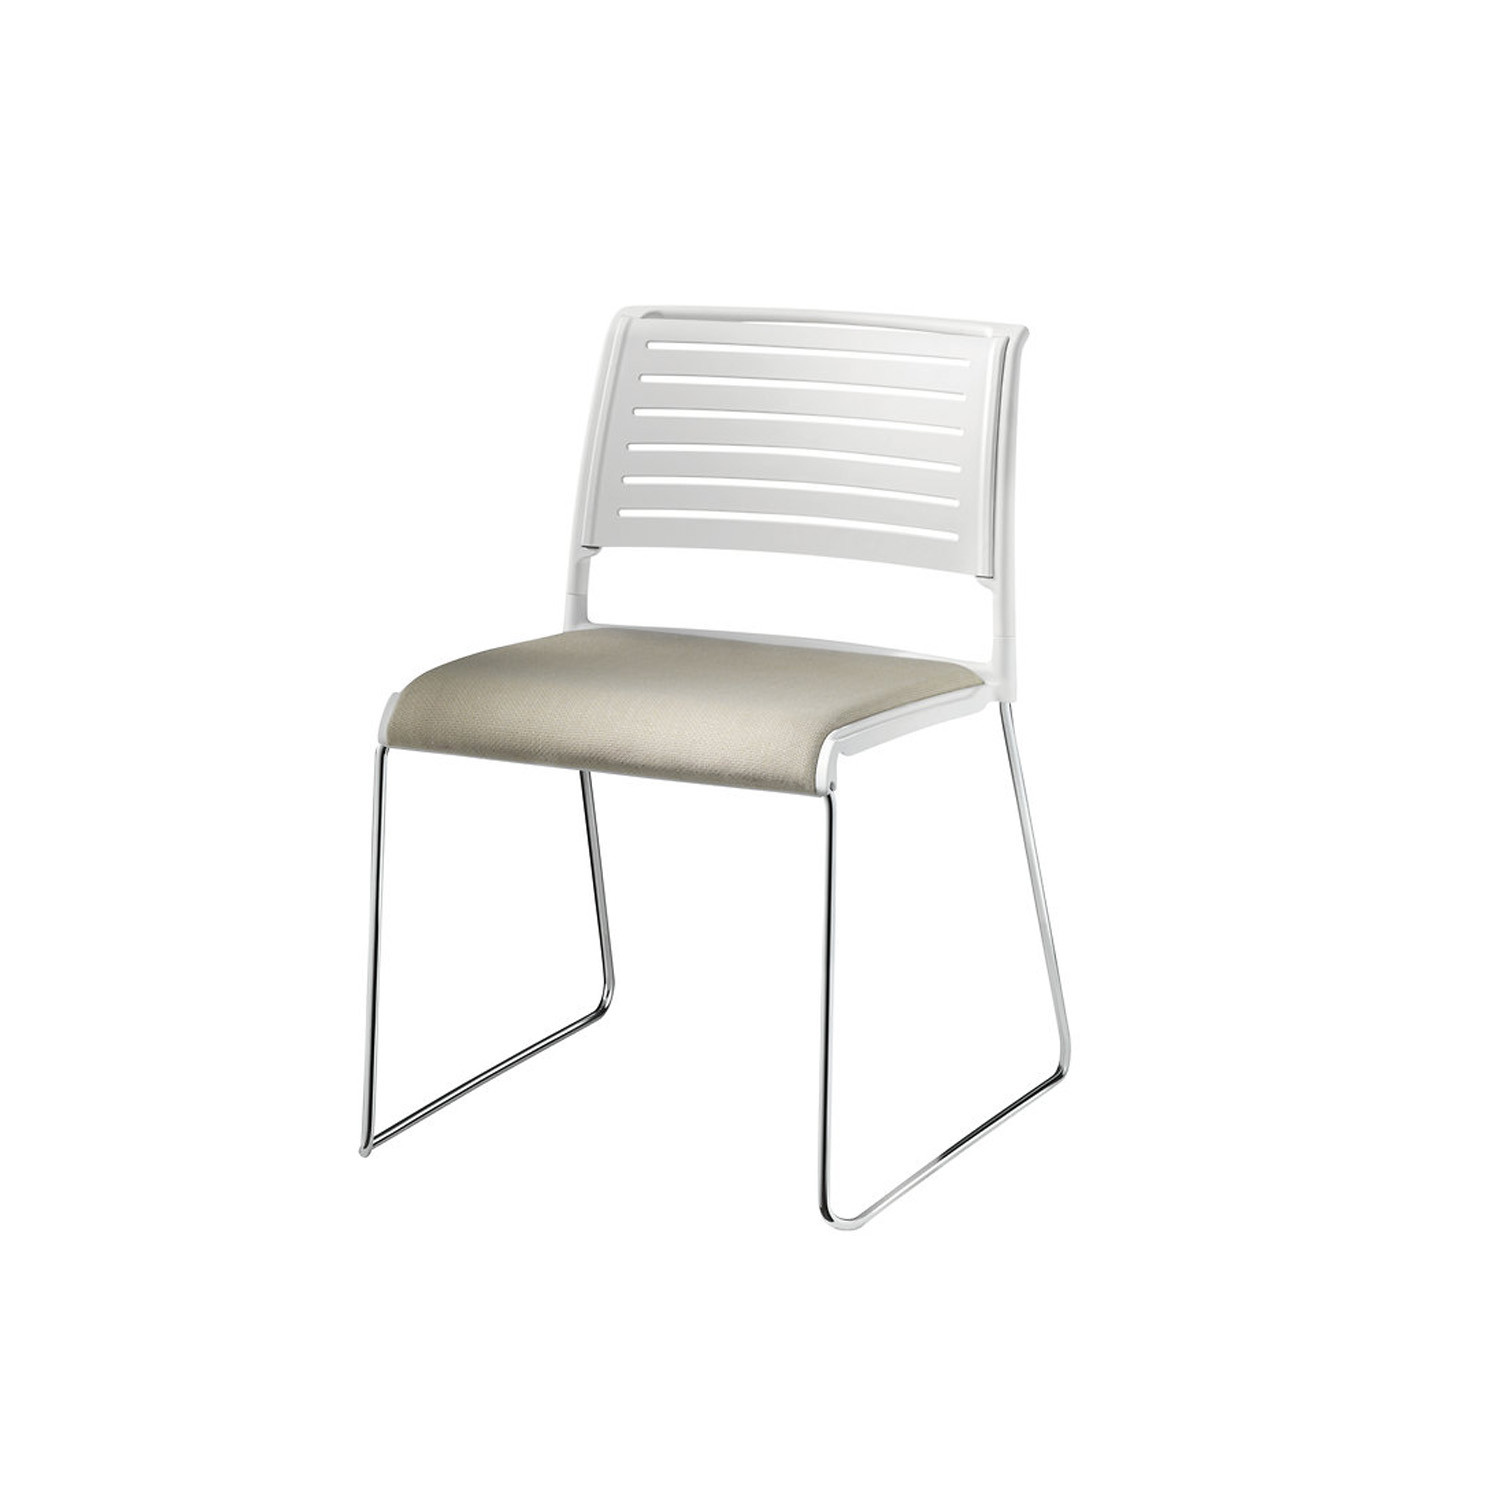 Aline-S Chairs